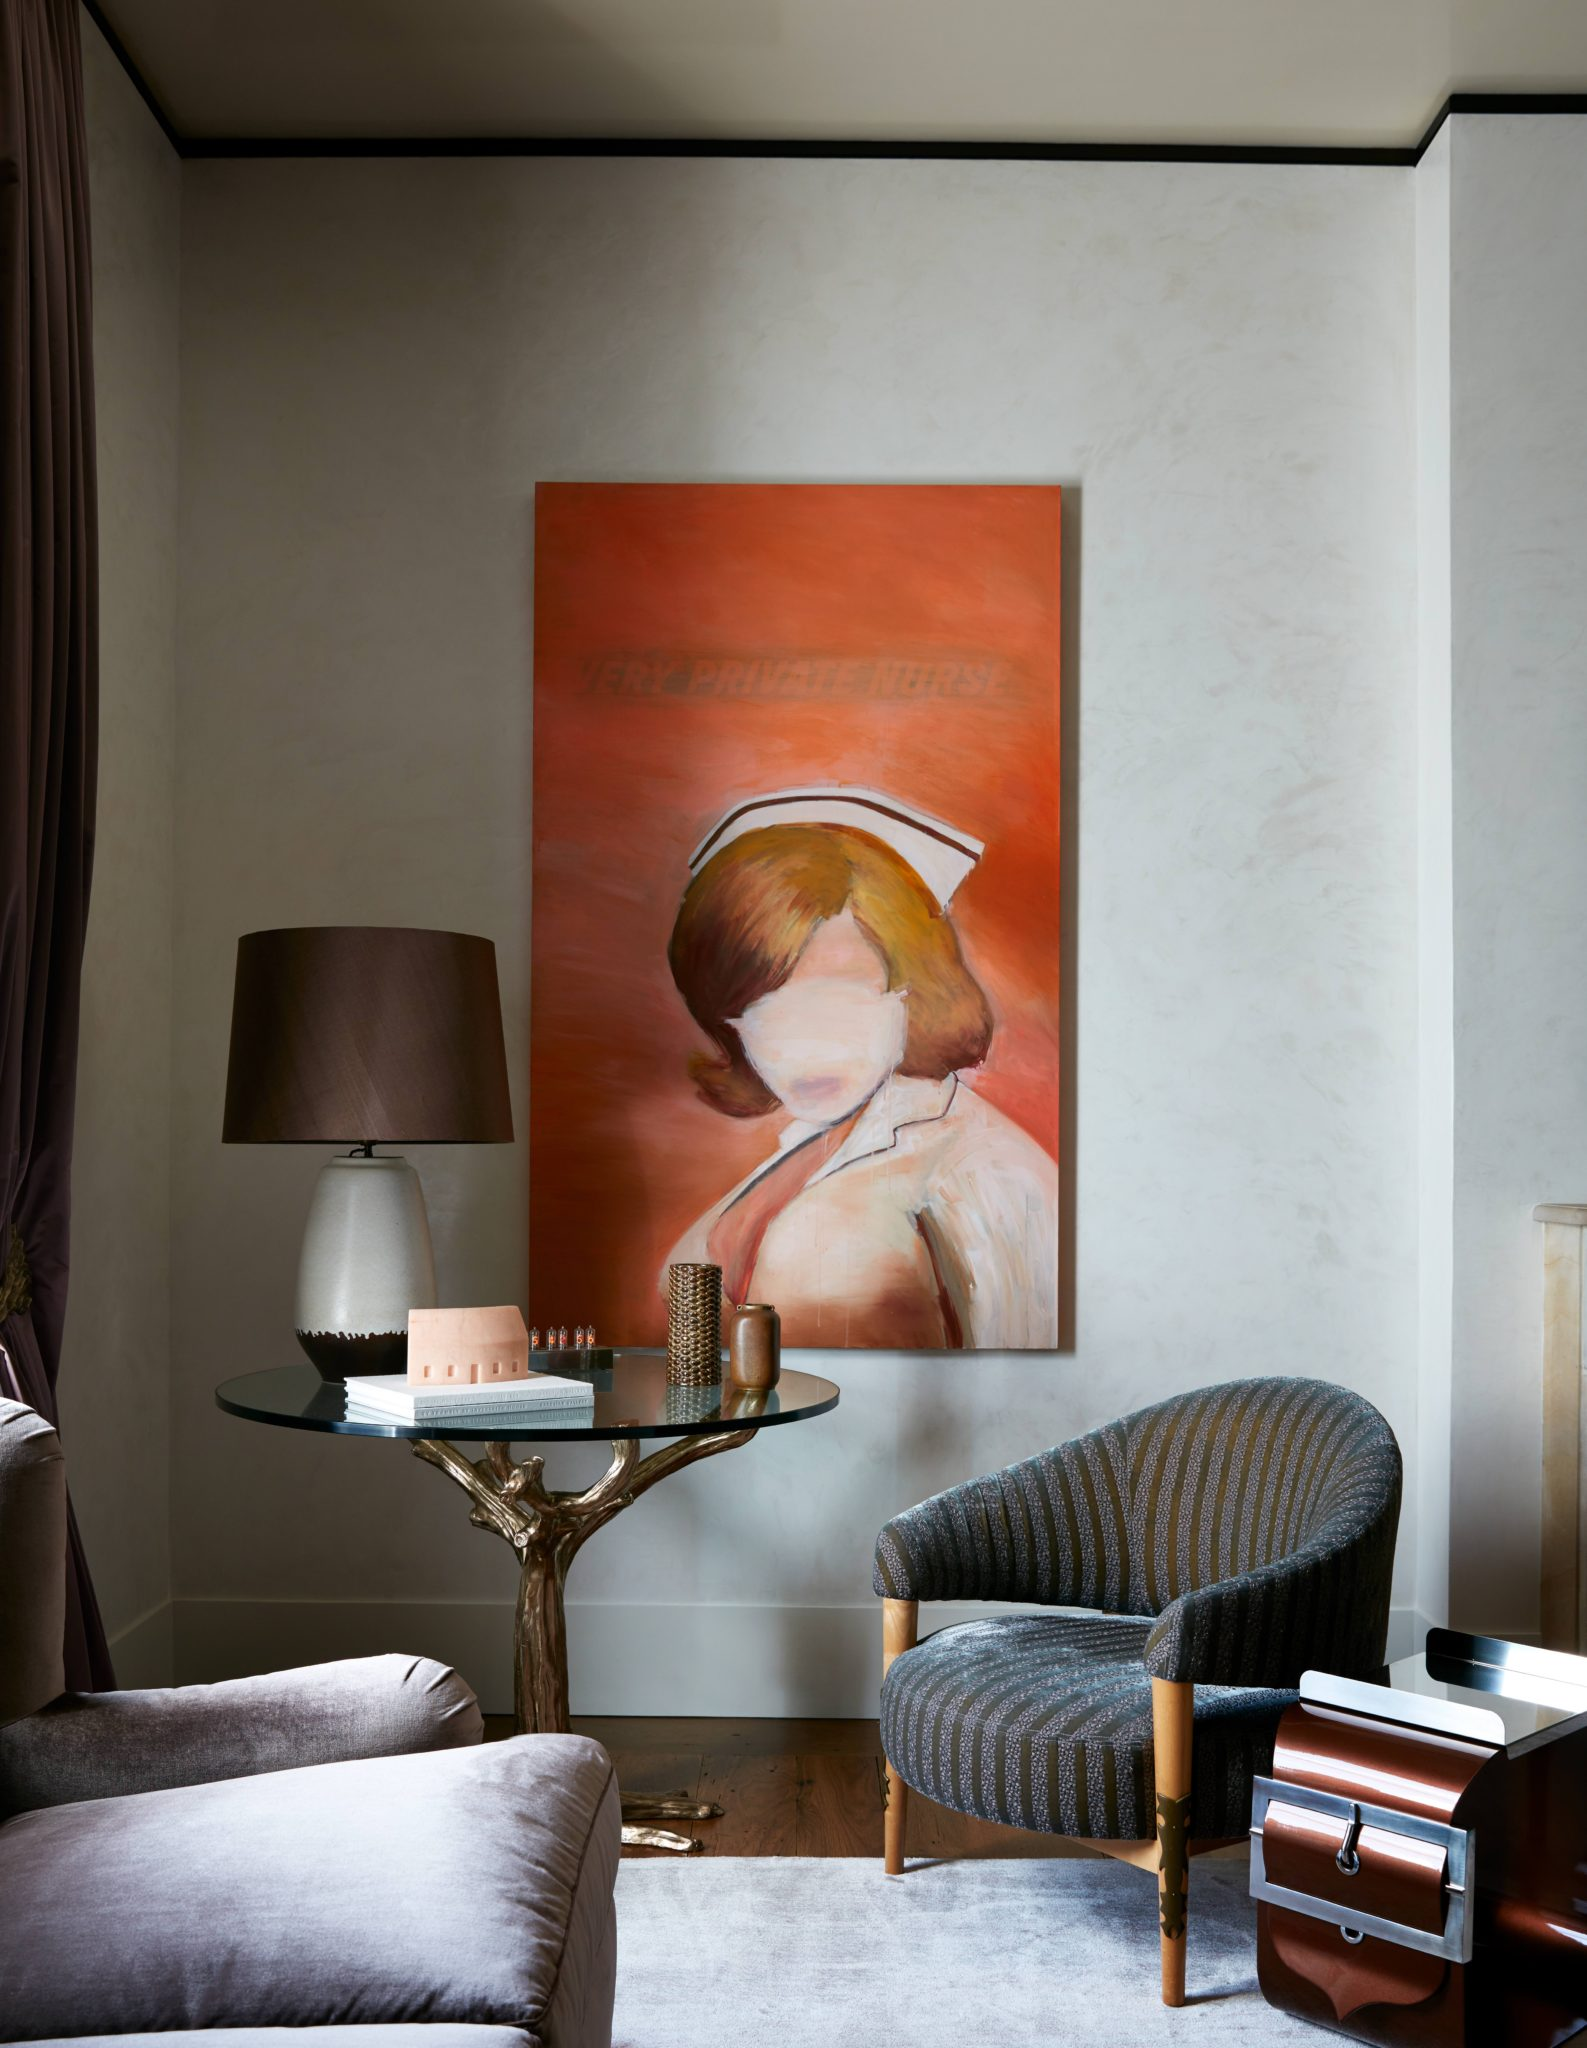 In a corner of the master bedroom in a reconfigured Upper East Side duplex, a Garouste & Bonetti Concerto armchair is joined by a Maria Pergay bracelet side table and a 2007 Richard Prince painting, Very Private Nurse #1.